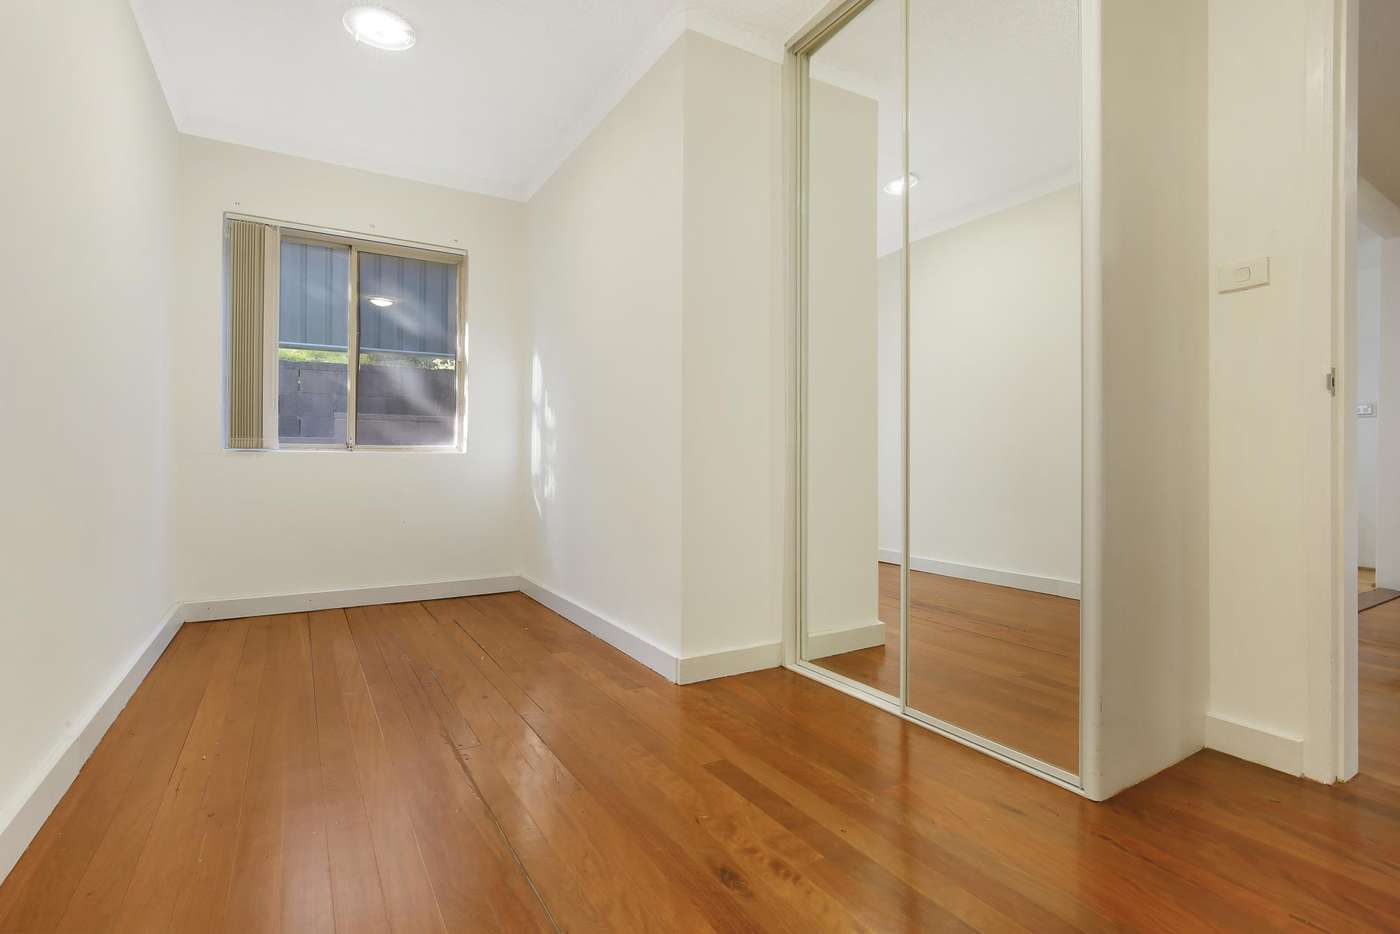 Fifth view of Homely unit listing, 3/48 Robsons Road, Keiraville NSW 2500